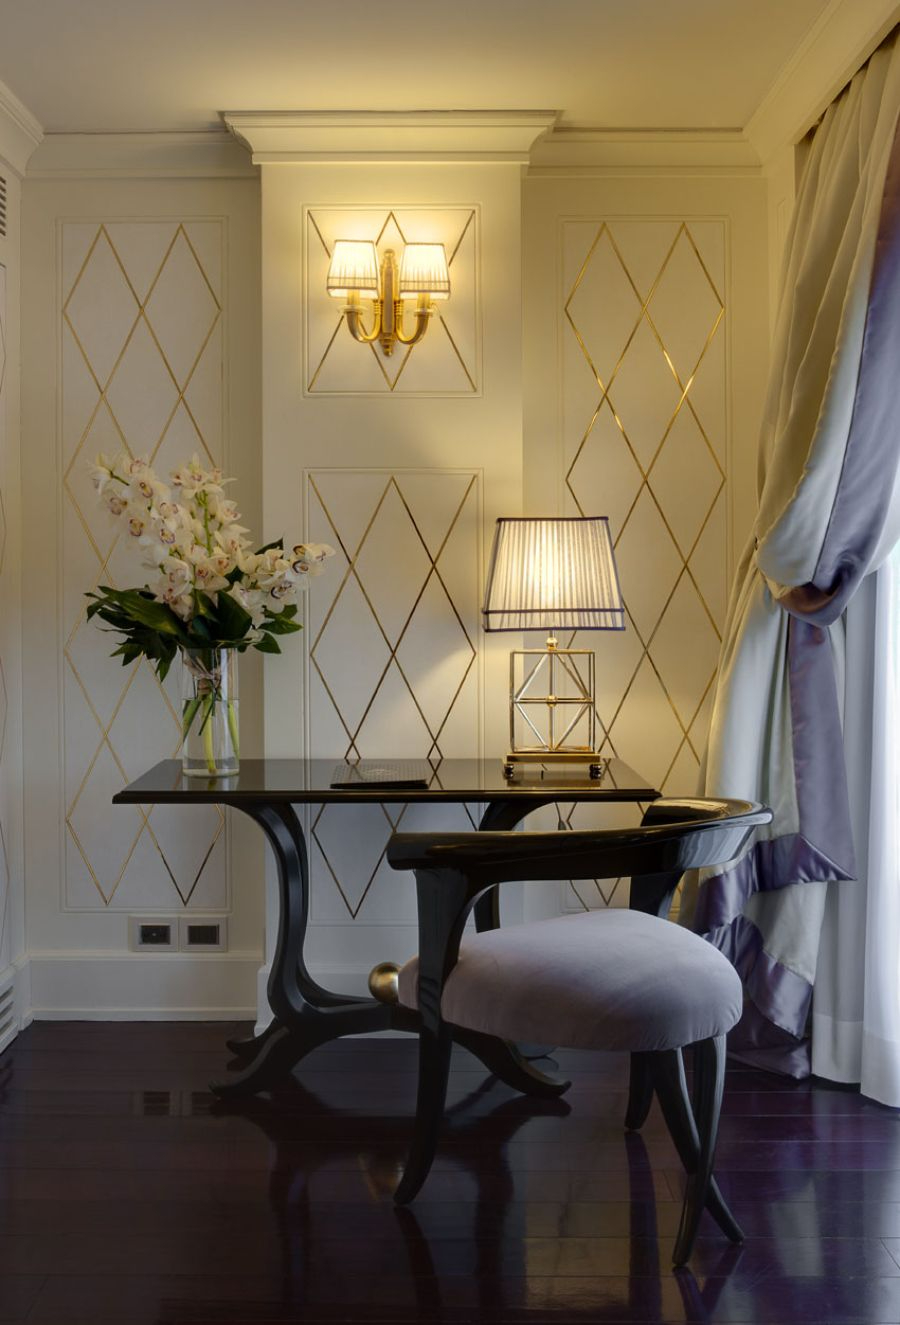 Be inspired by 20 of the Best Interior Designers from Florence interior designers Be Inspired by 20 of the Best Interior Designers from Florence Be inspired by 20 of the Best Interior Designers from Florence 11 6